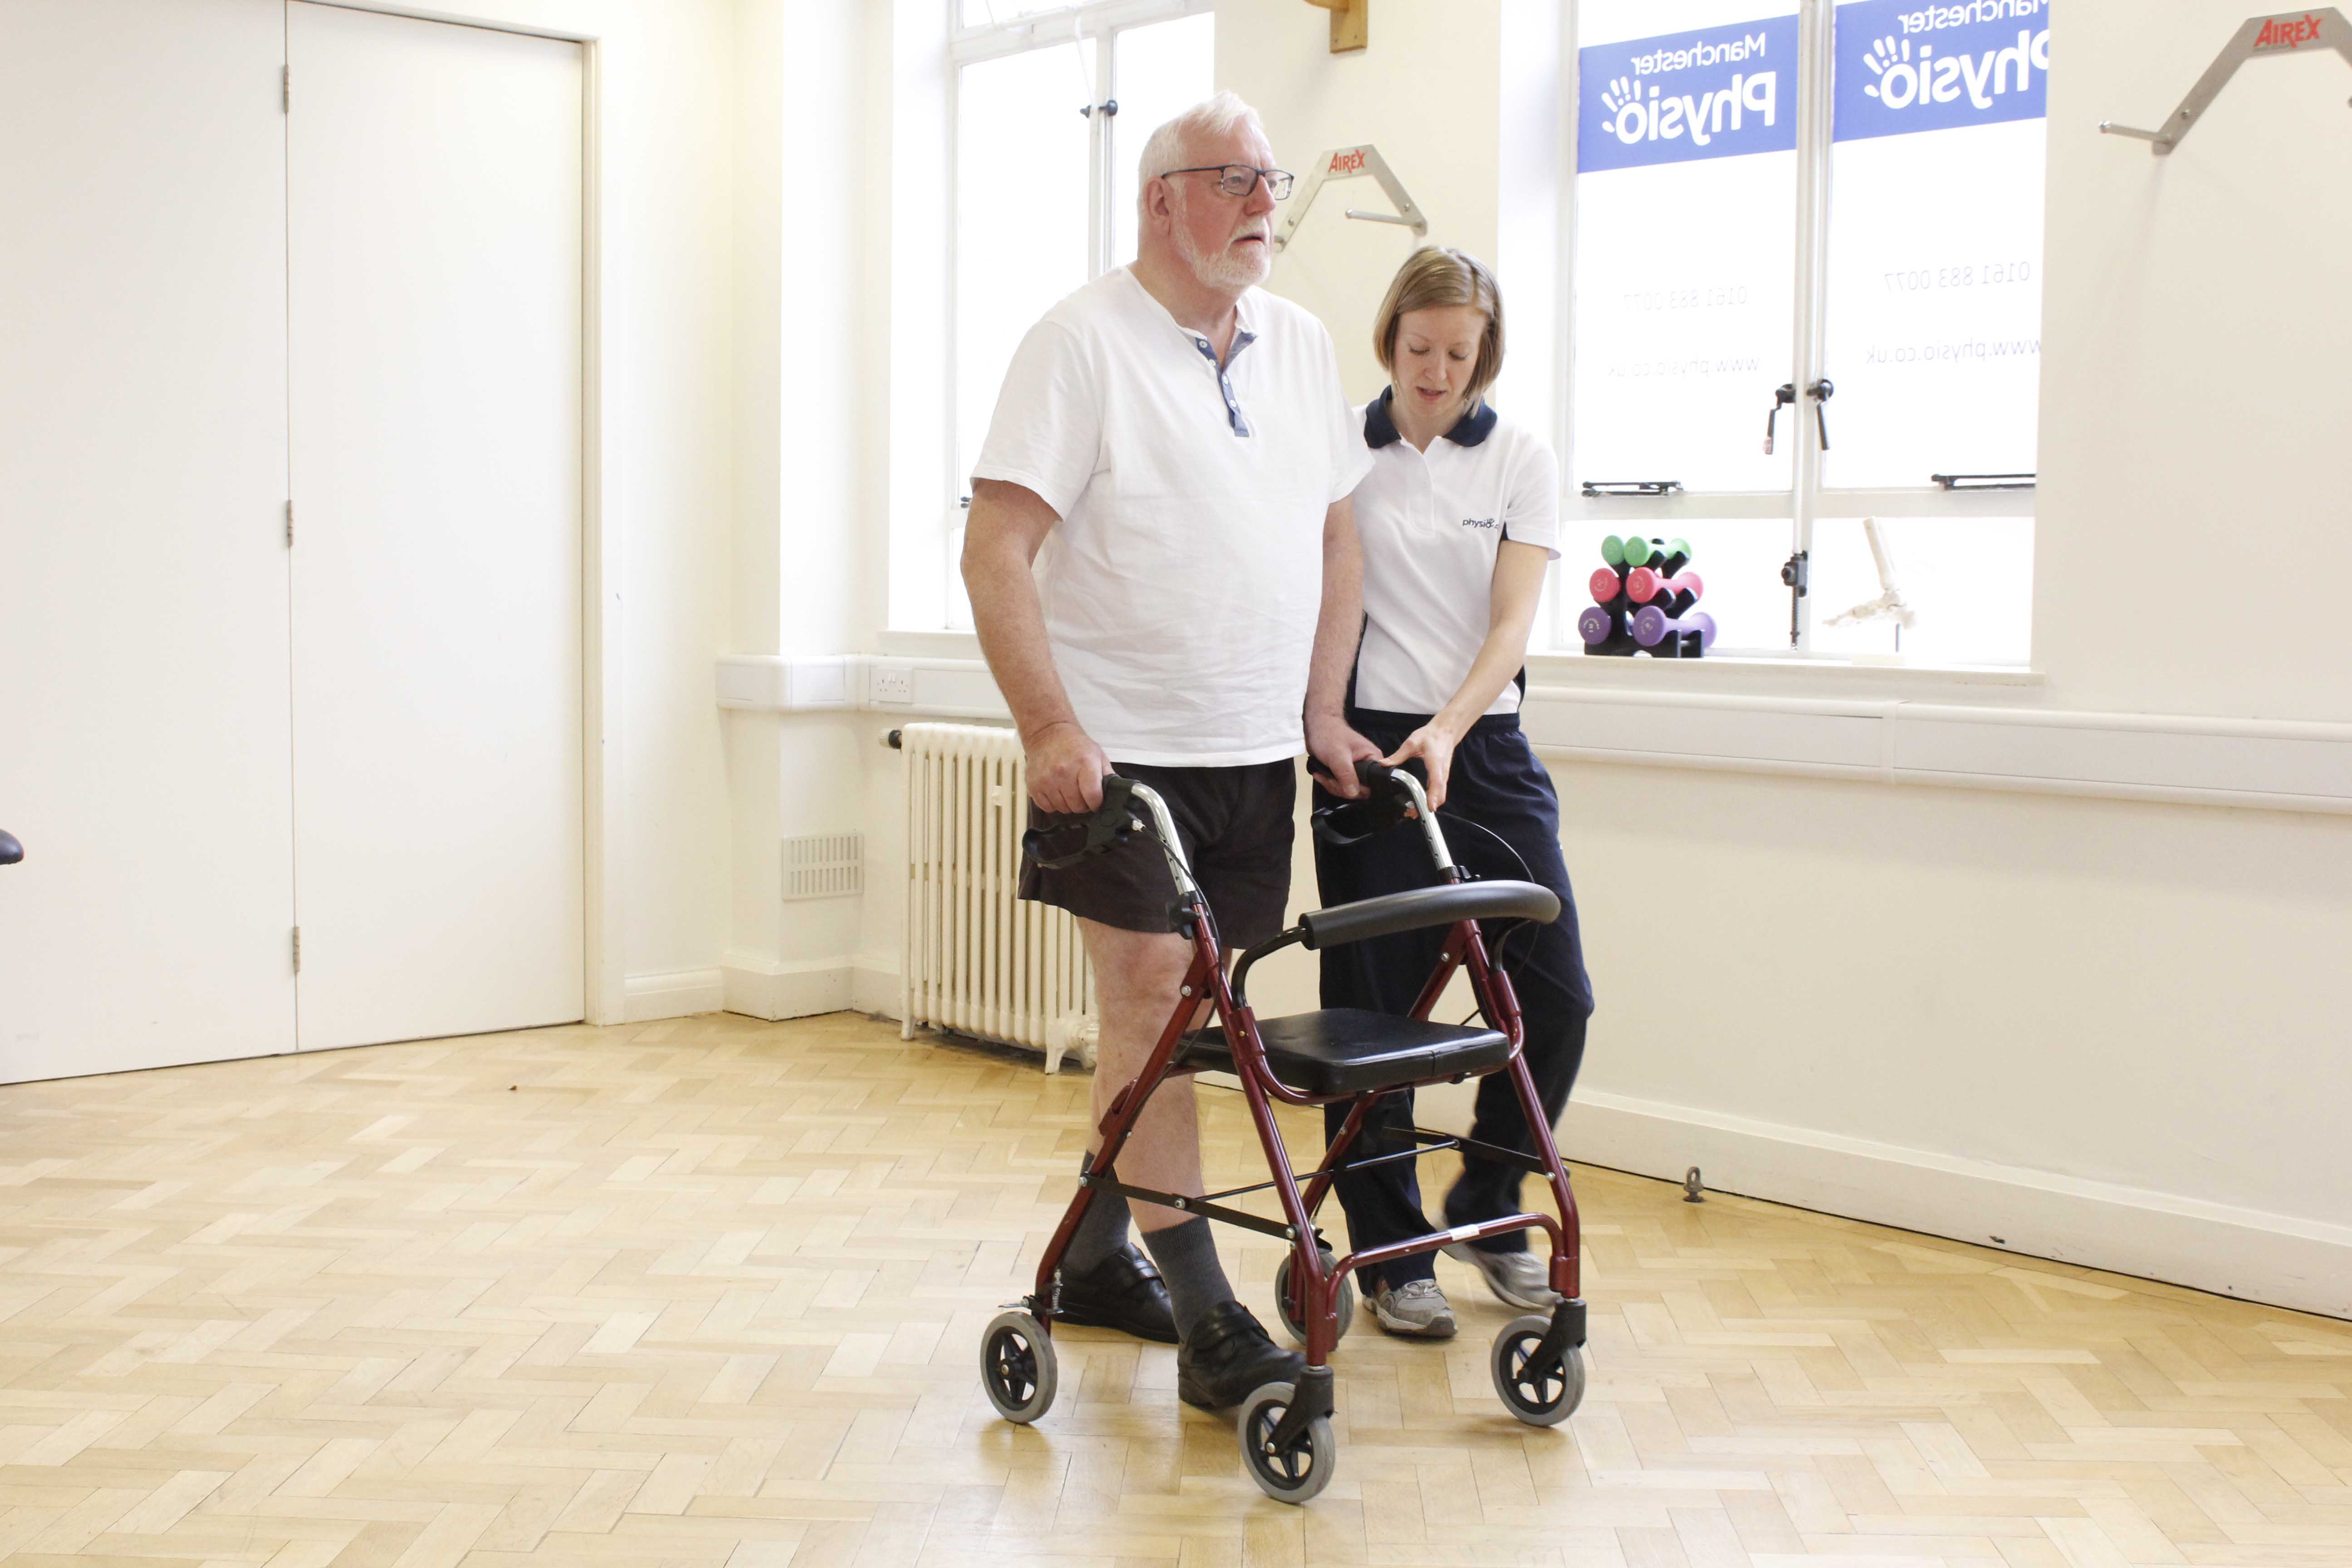 Gait re-education mobility exercises using a wheeled walking frame and supervision from a specialist physiotherapist